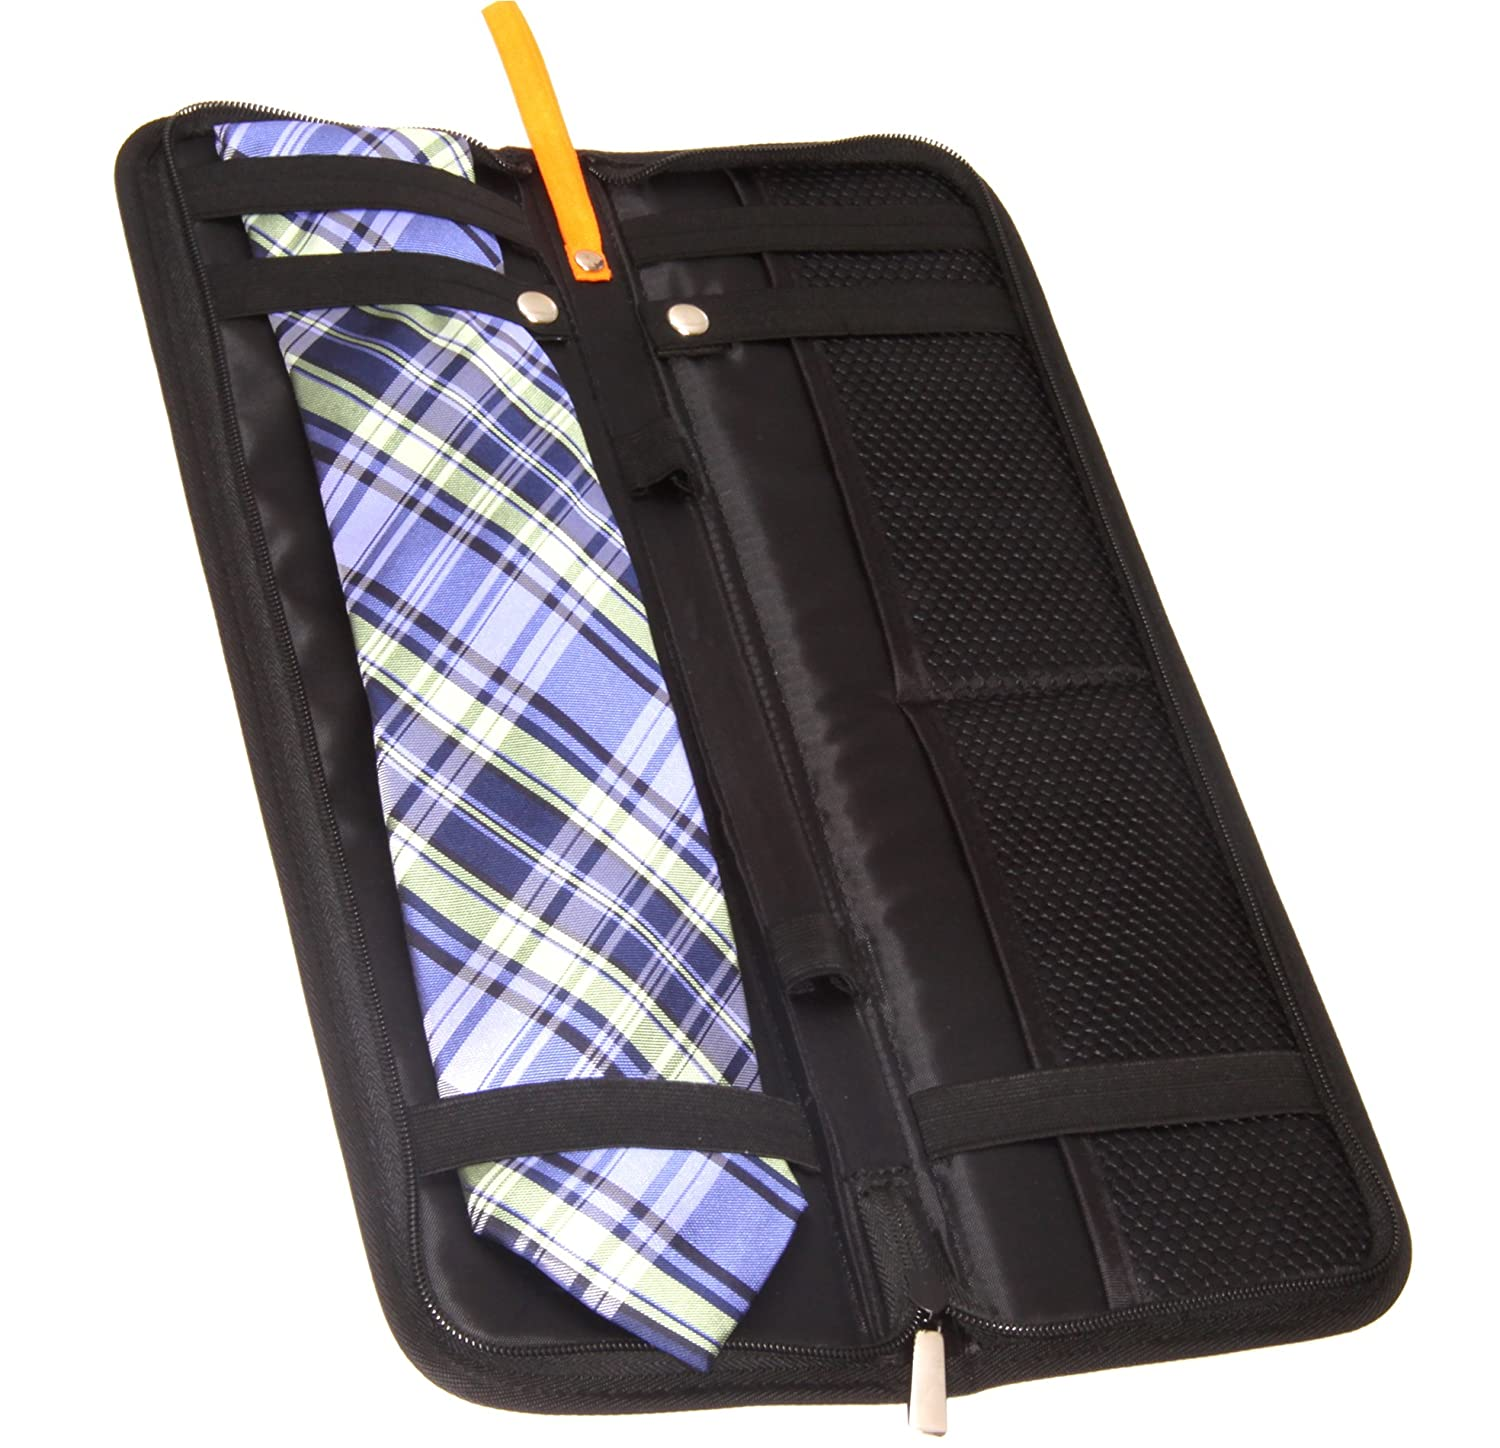 Living Health Products TIE-CASE-001 Tie Case For Travel - Leather Travel Tie Case   B005AWVVQU